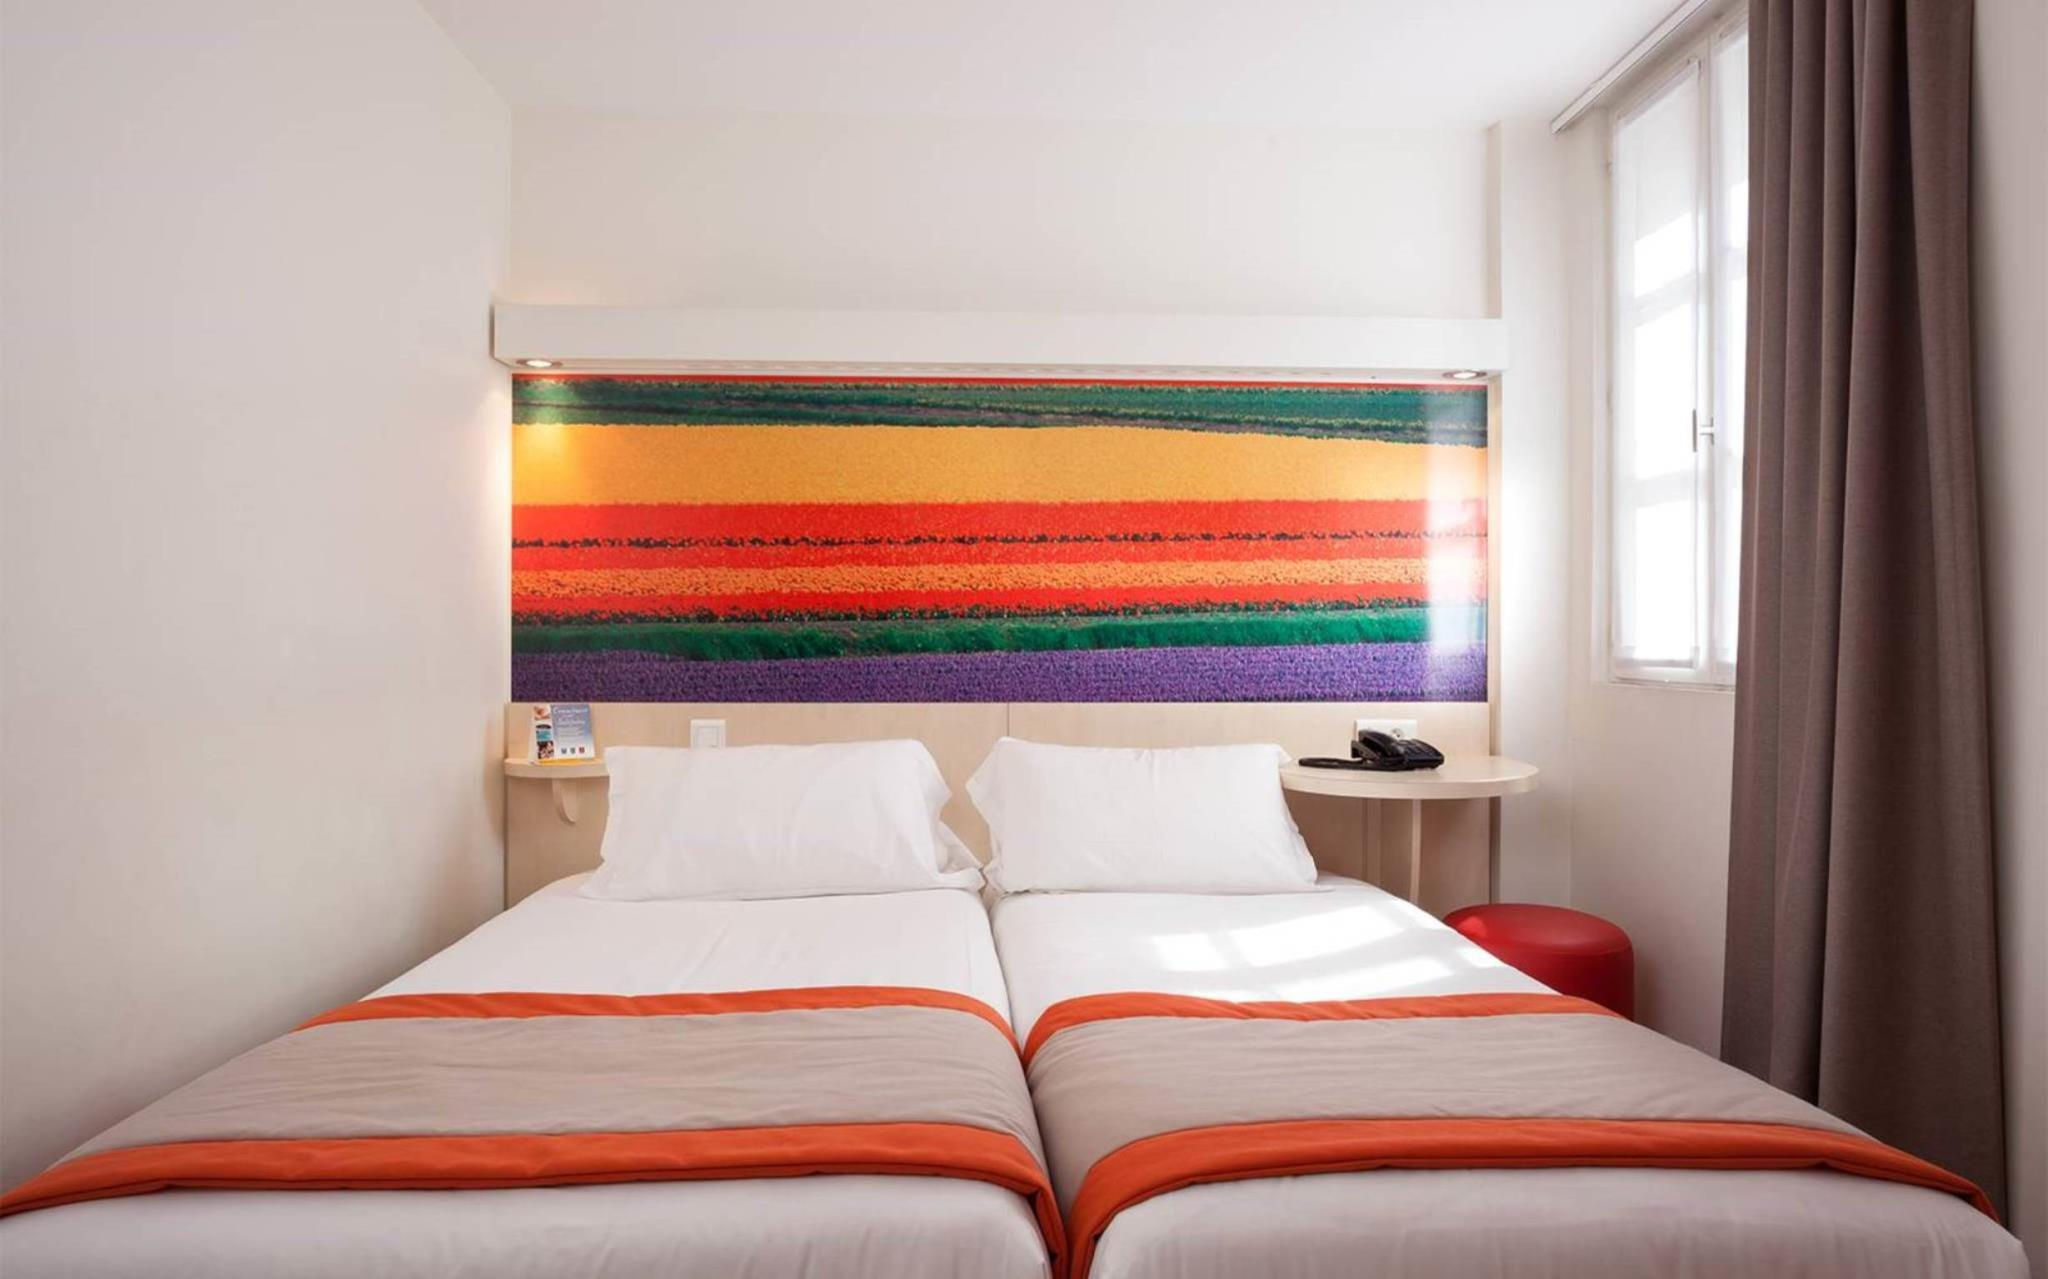 Con 2 camas individuales para 2 personas - No fumadores (2 Single Bed 2 People - Non-Smoking)